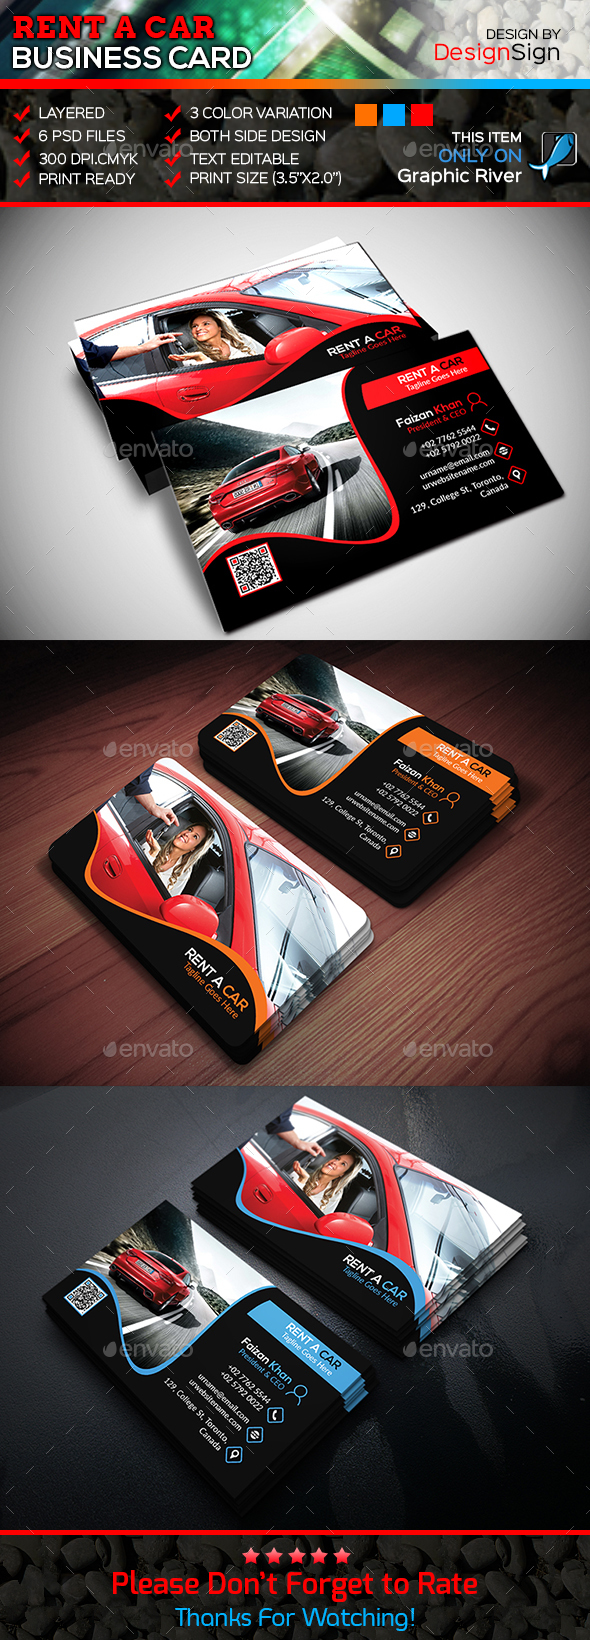 Rent a car business card graphics designs templates magicingreecefo Images